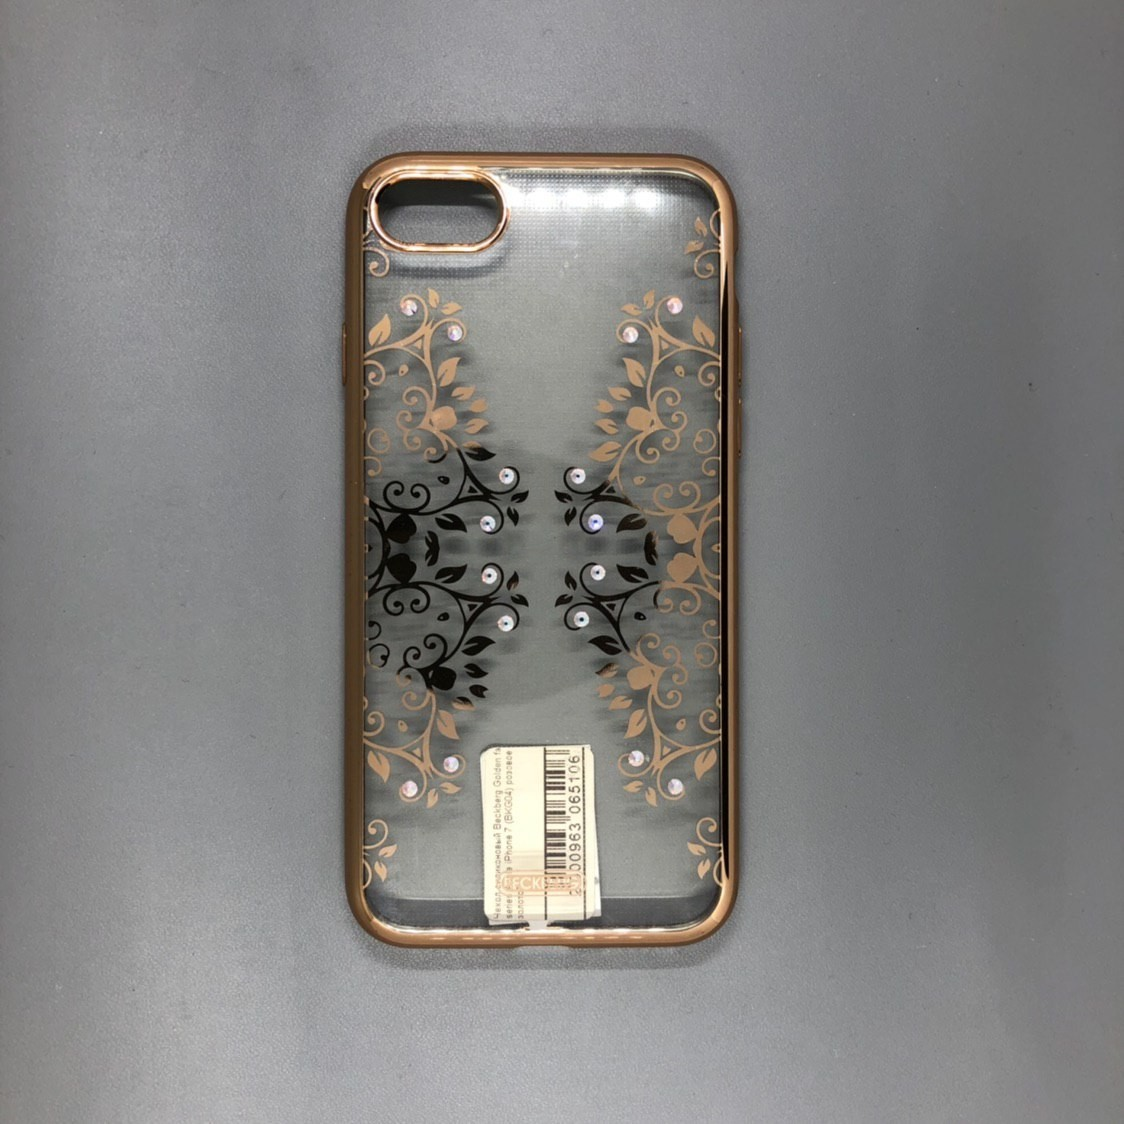 iPhone 7 Plastic BeckBerg Golden